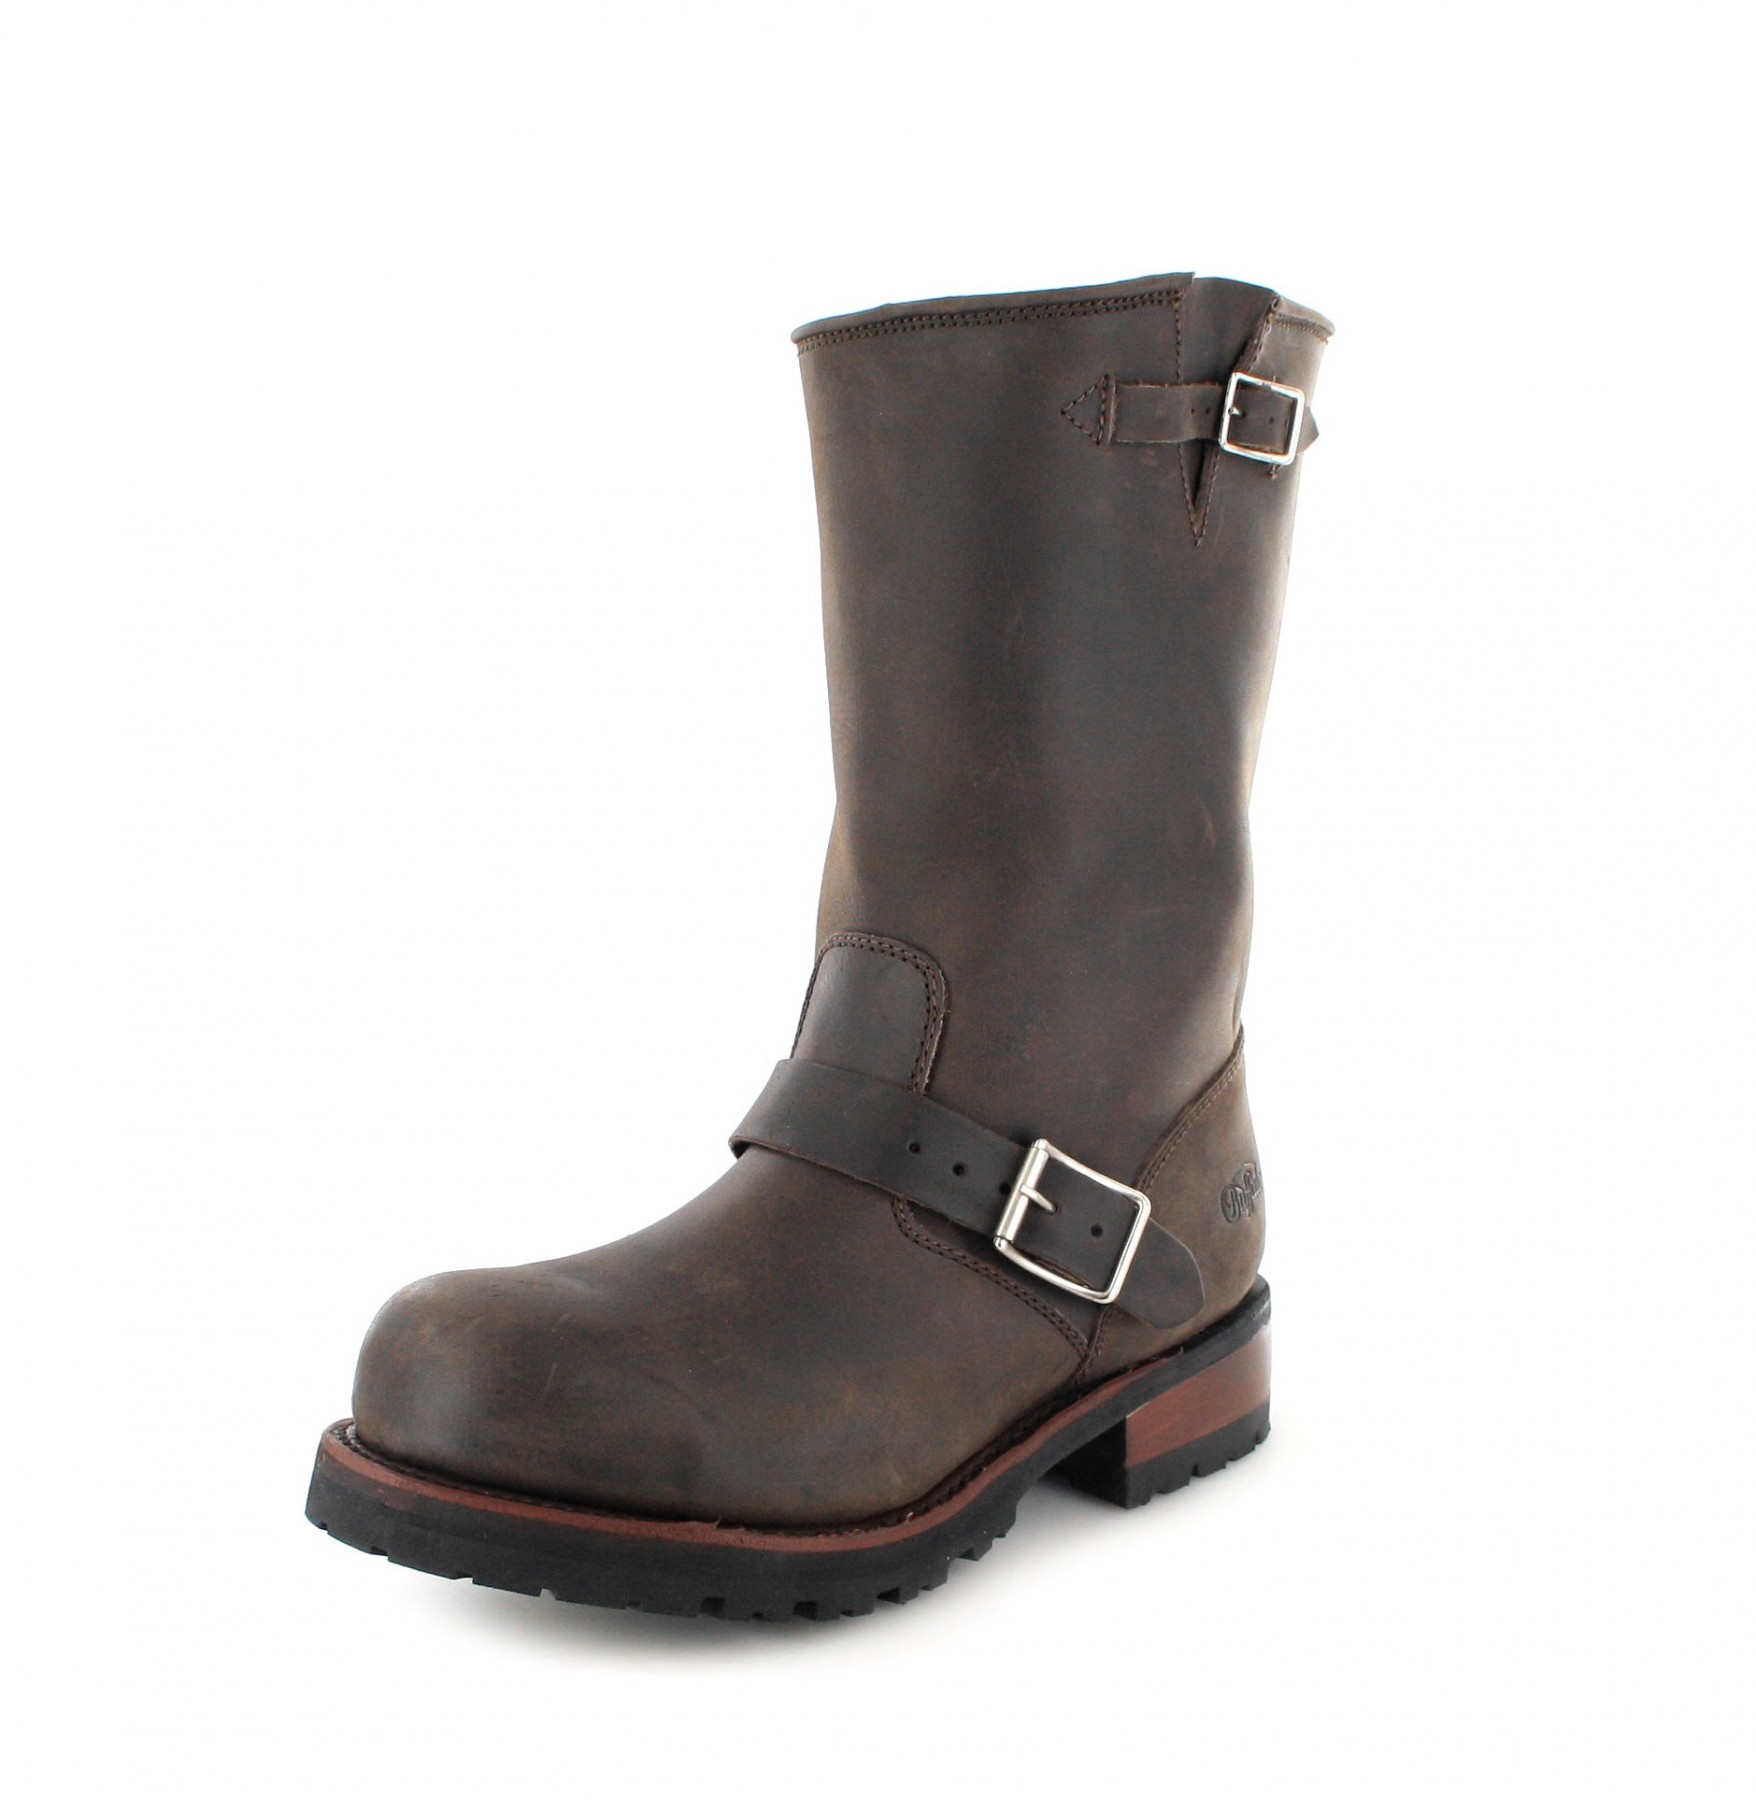 Buffalo Boots 1808 Cactus Brown